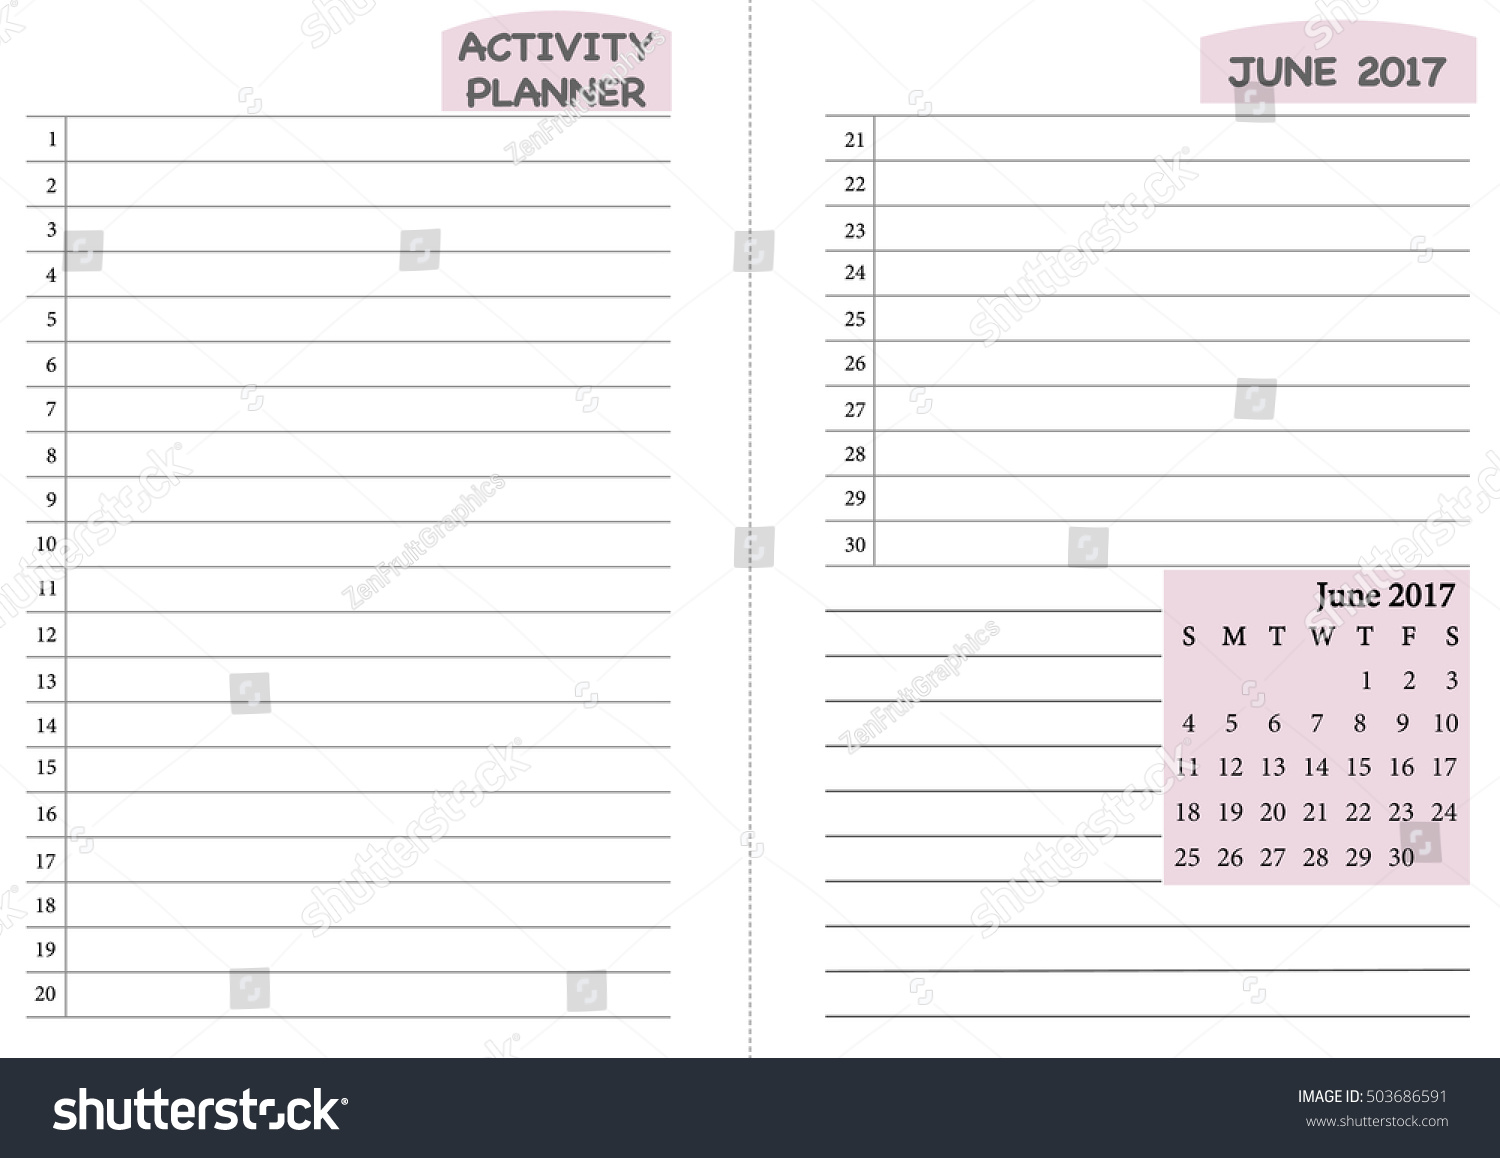 June 2017 Calendar Template Monthly Planner Template With Daily Routine  Check List, Activity Schedule Chart